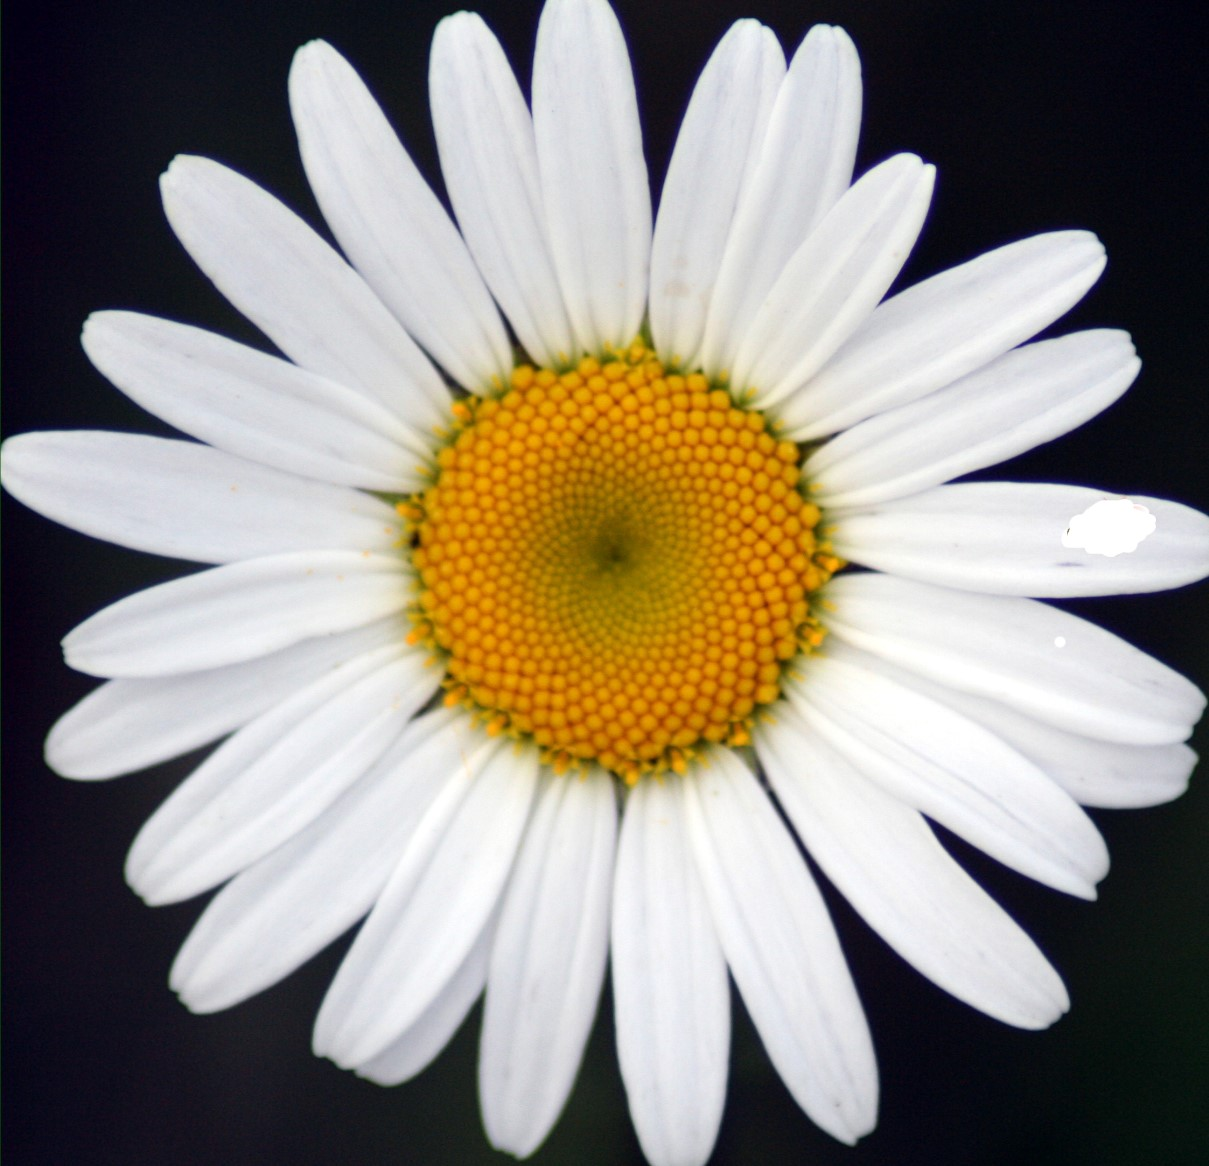 He loves me he loves me not good better best love we all know of the game taking a daisy and plucking the petals one by one saying he loves me then he loves me not with the alternating petals izmirmasajfo Gallery